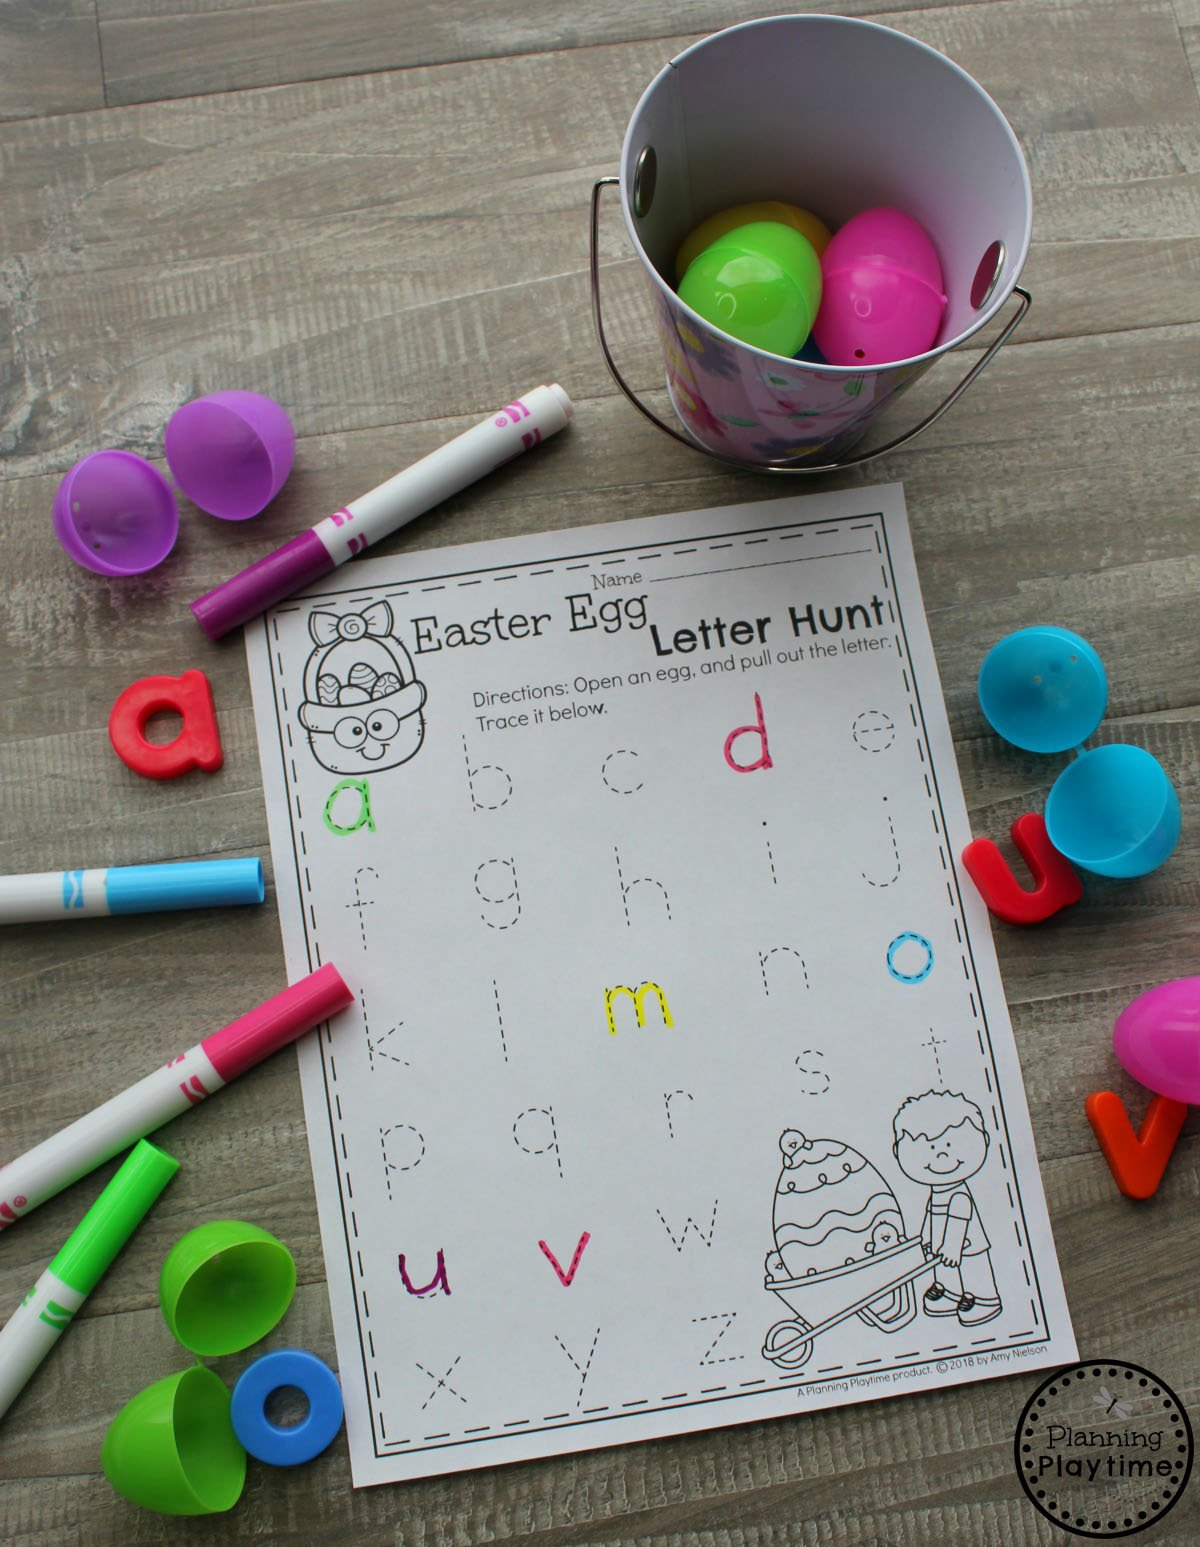 Preschool Easter Egg Hunt Game - Find and Trace the Alphabet Letters. #easter #preschool #easteractivities #easterpreschool #planningplaytime #letterworksheets #preschoolletters